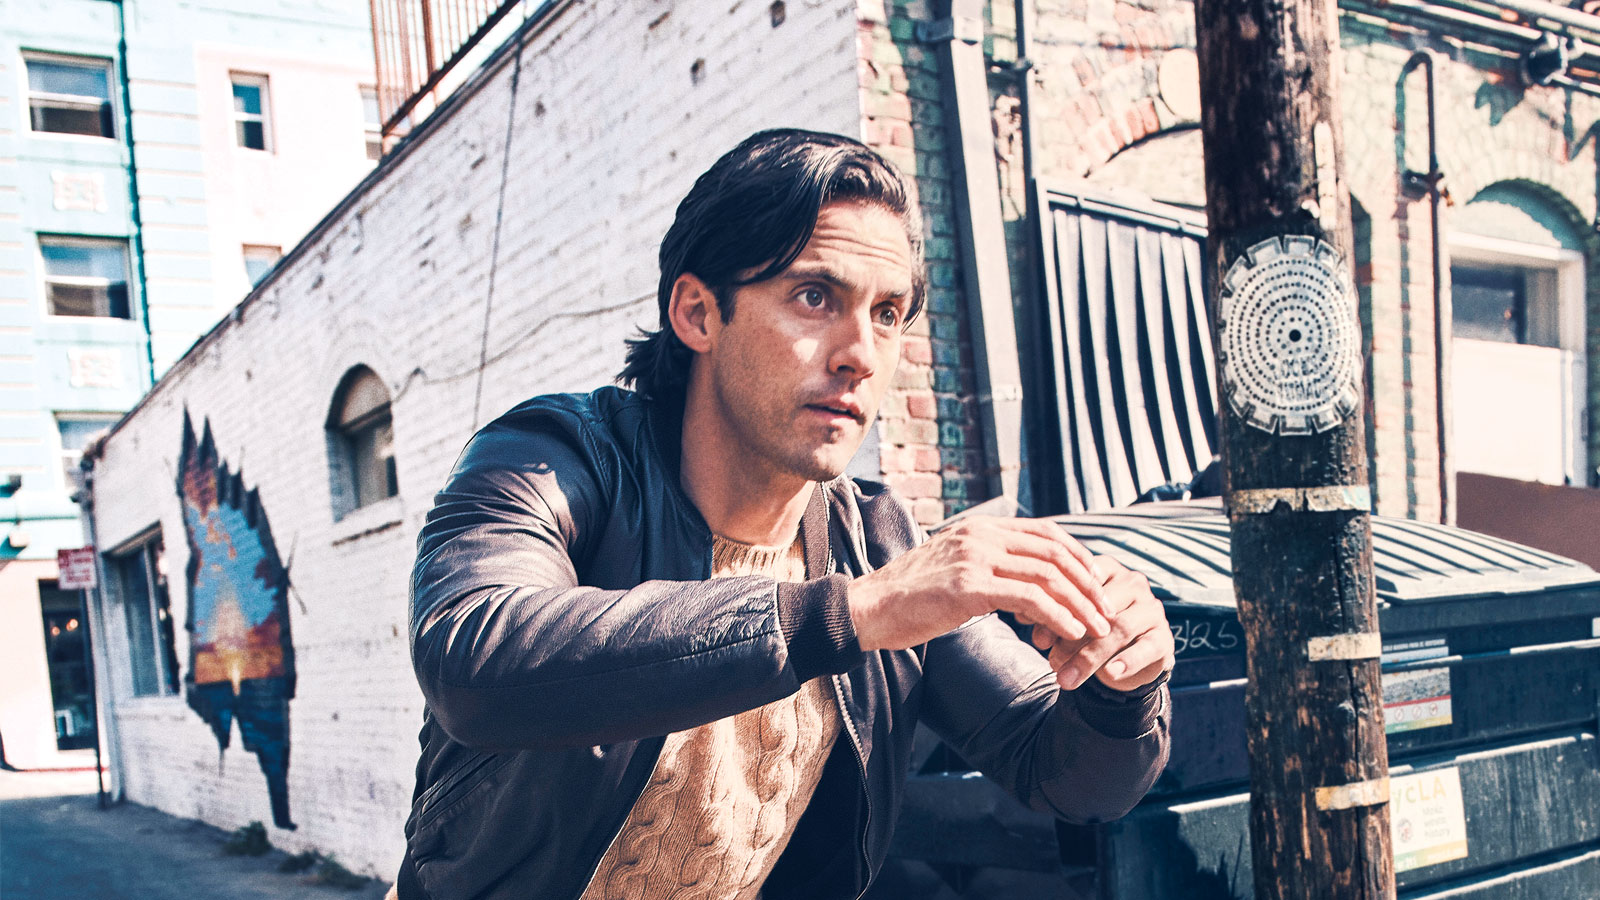 Gritty Gyms, Punching Bags, and Moving Tons of Weight': How Milo Ventimiglia Stays Fit